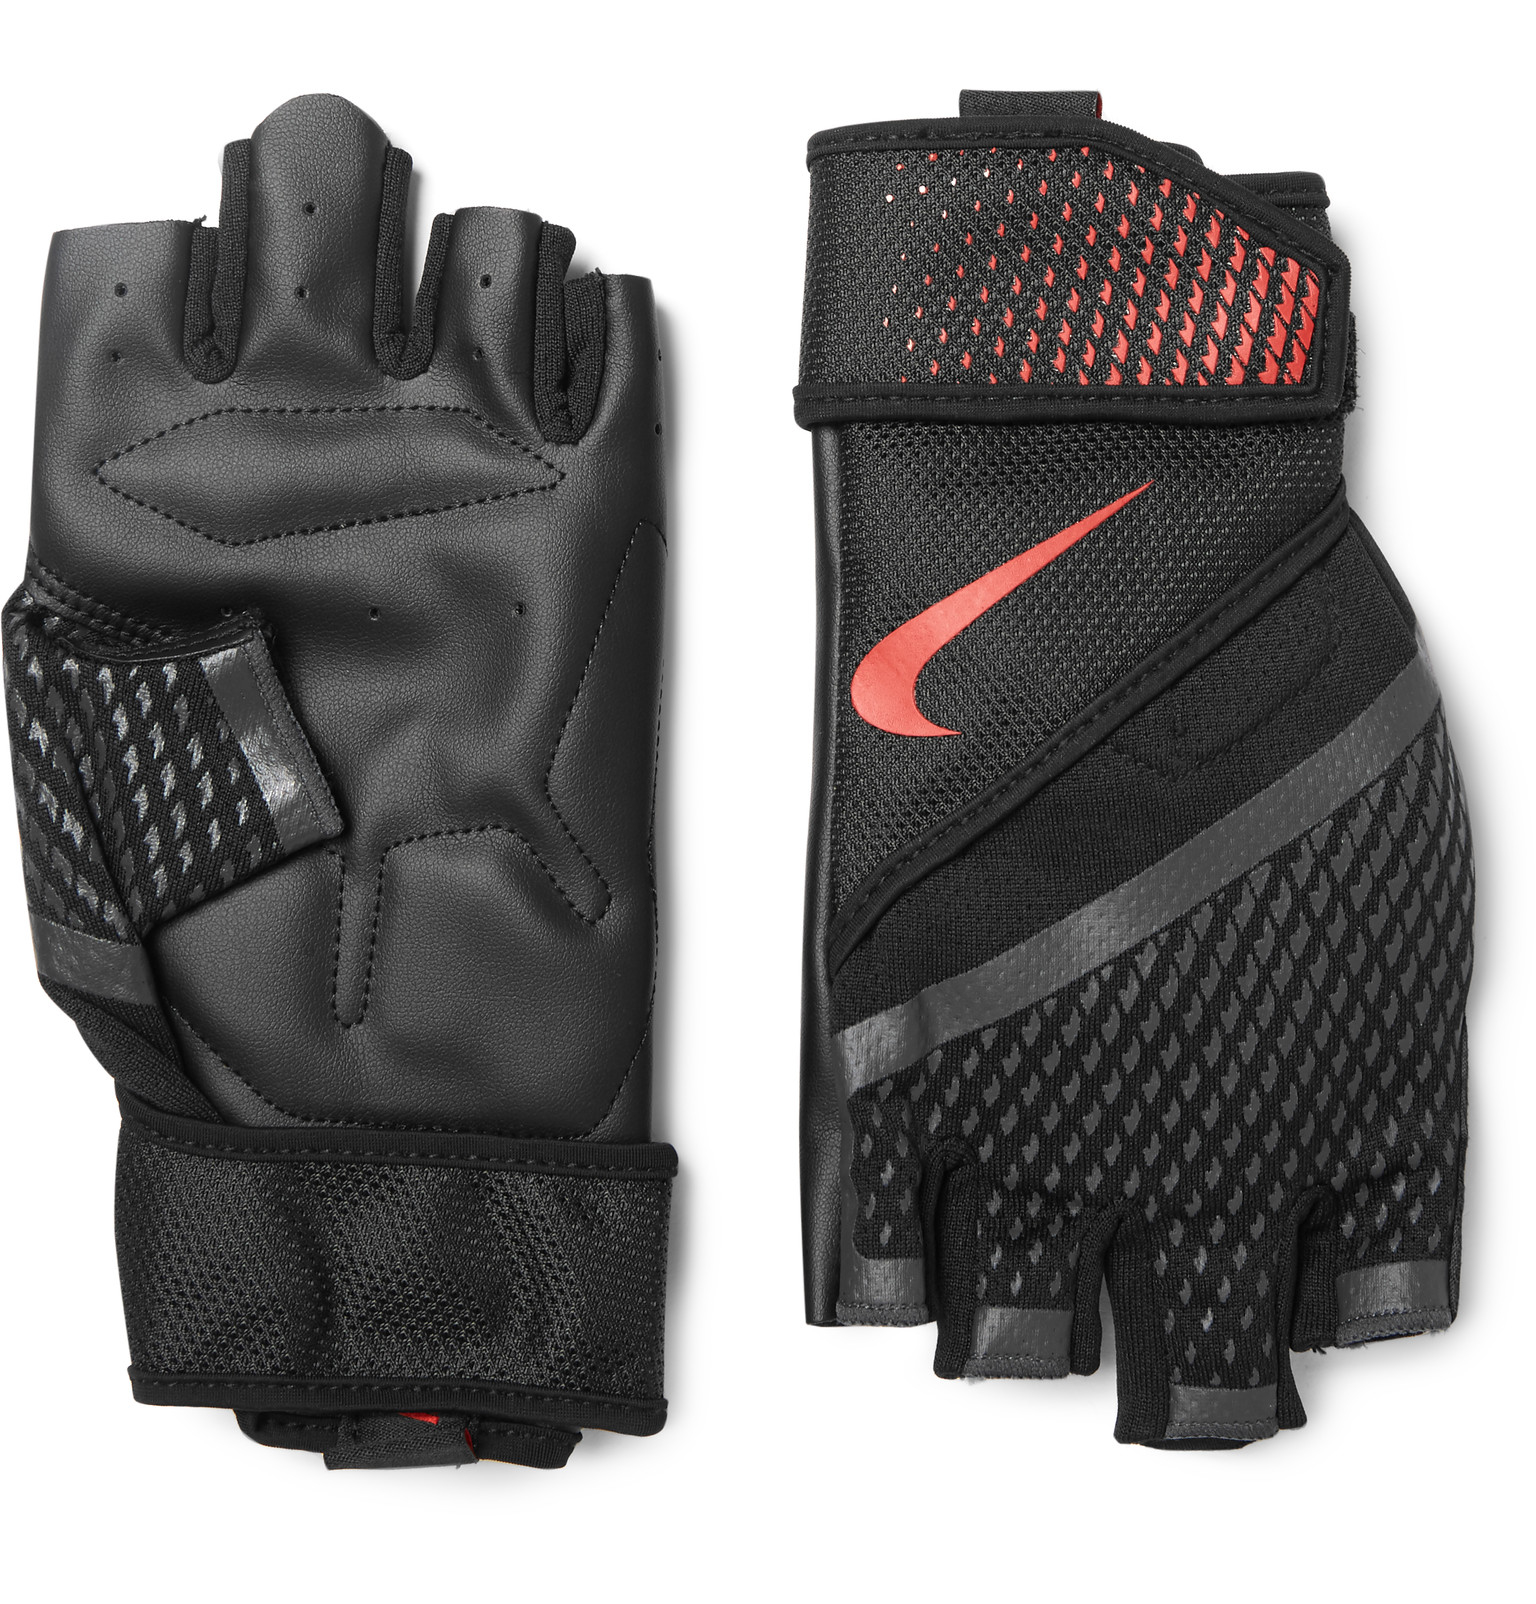 Nike Men S Destroyer Training Gloves: Nike Destroyer Training Gloves In Black For Men